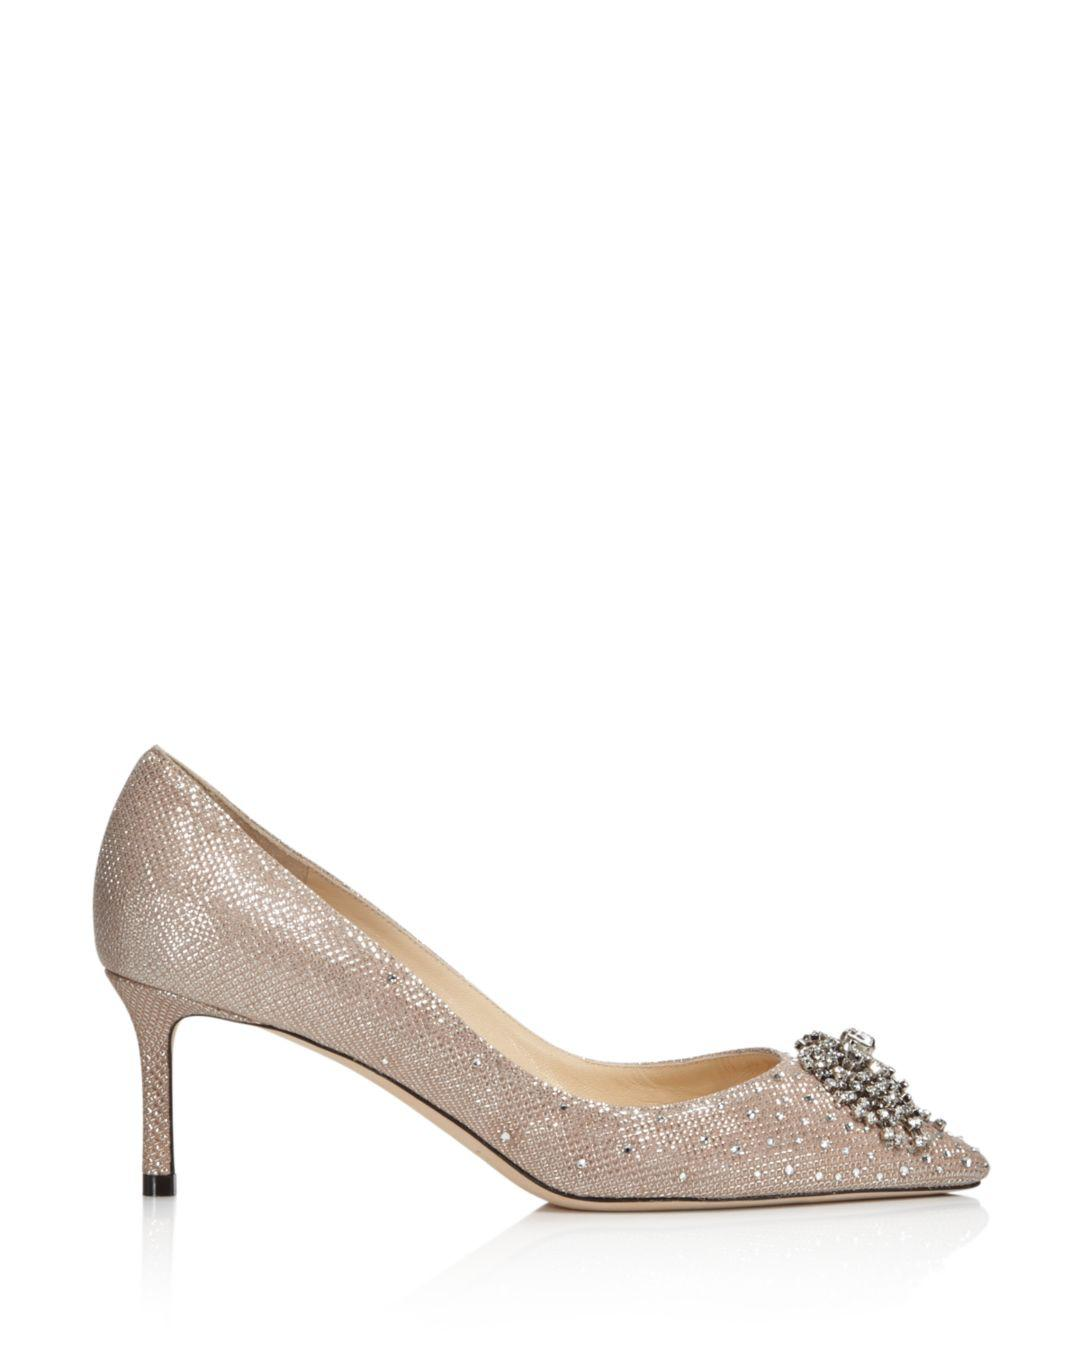 5e92c9117f32 Gallery. Previously sold at  Bloomingdale s · Women s Pointed Toe Pumps  Women s Jimmy Choo Glitter ...